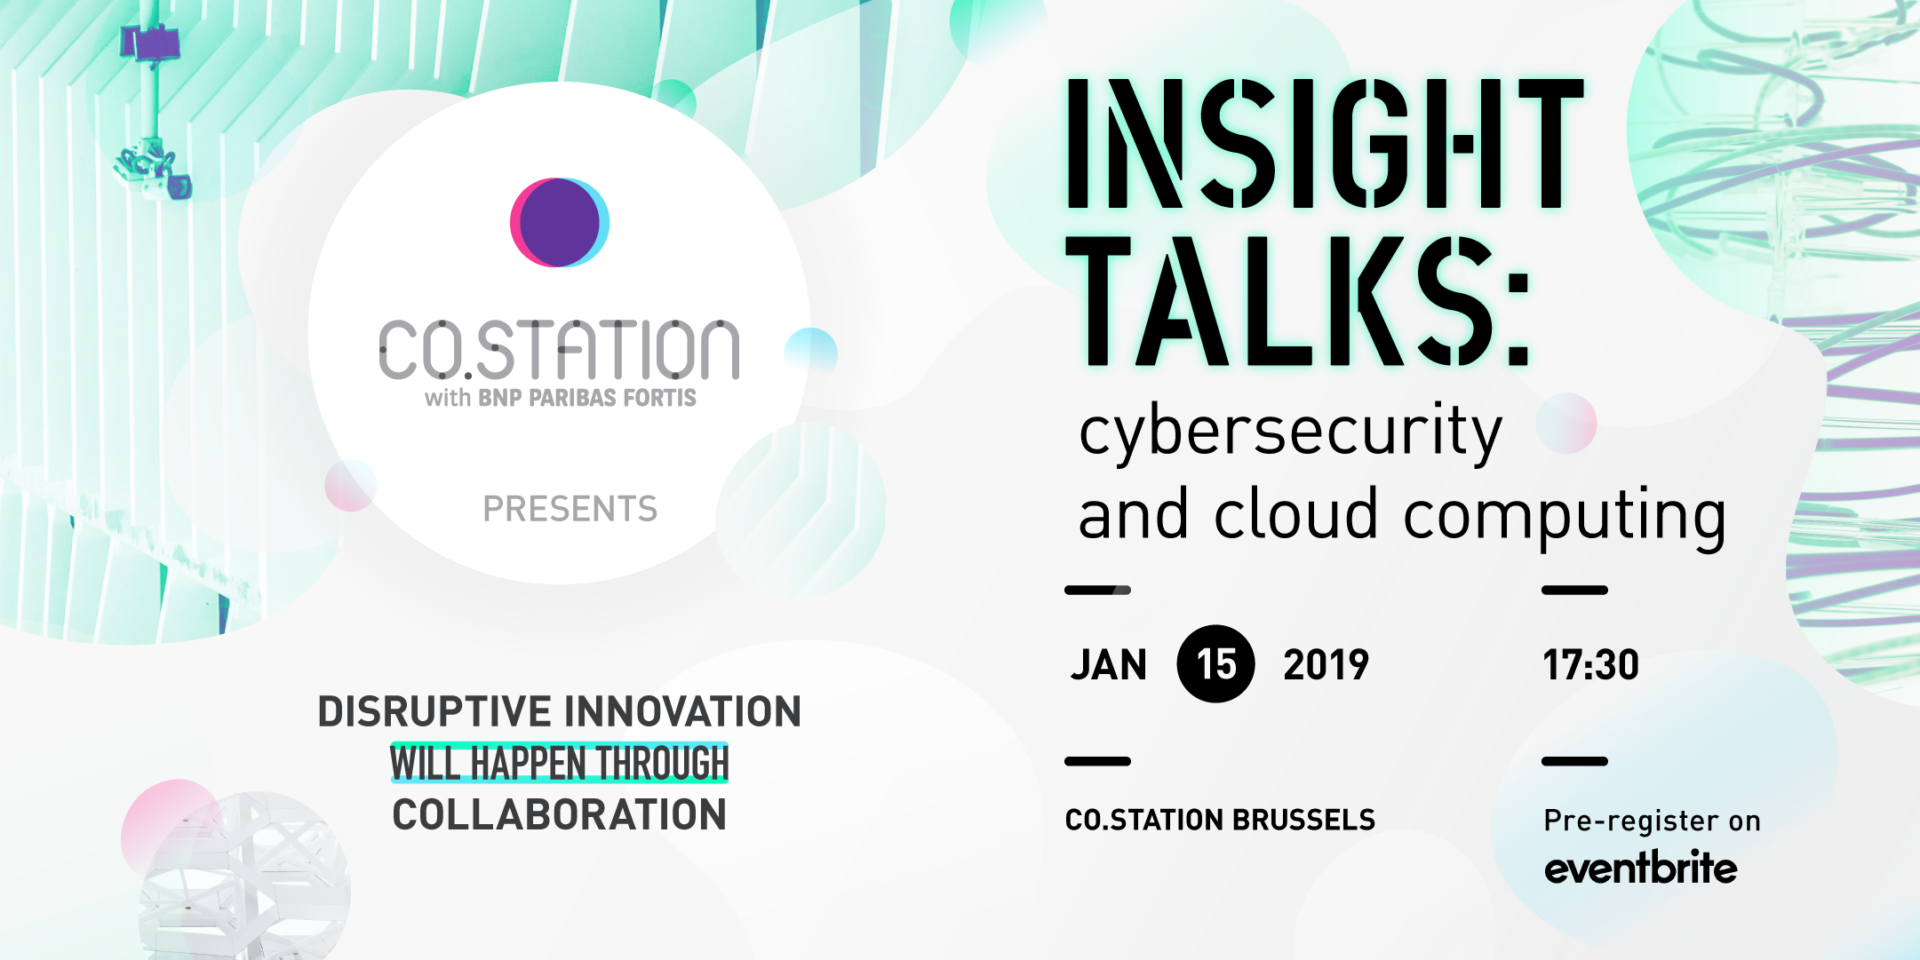 Co.Station innovation Programs Insight Talk | Cyber Security and Cloud Computing